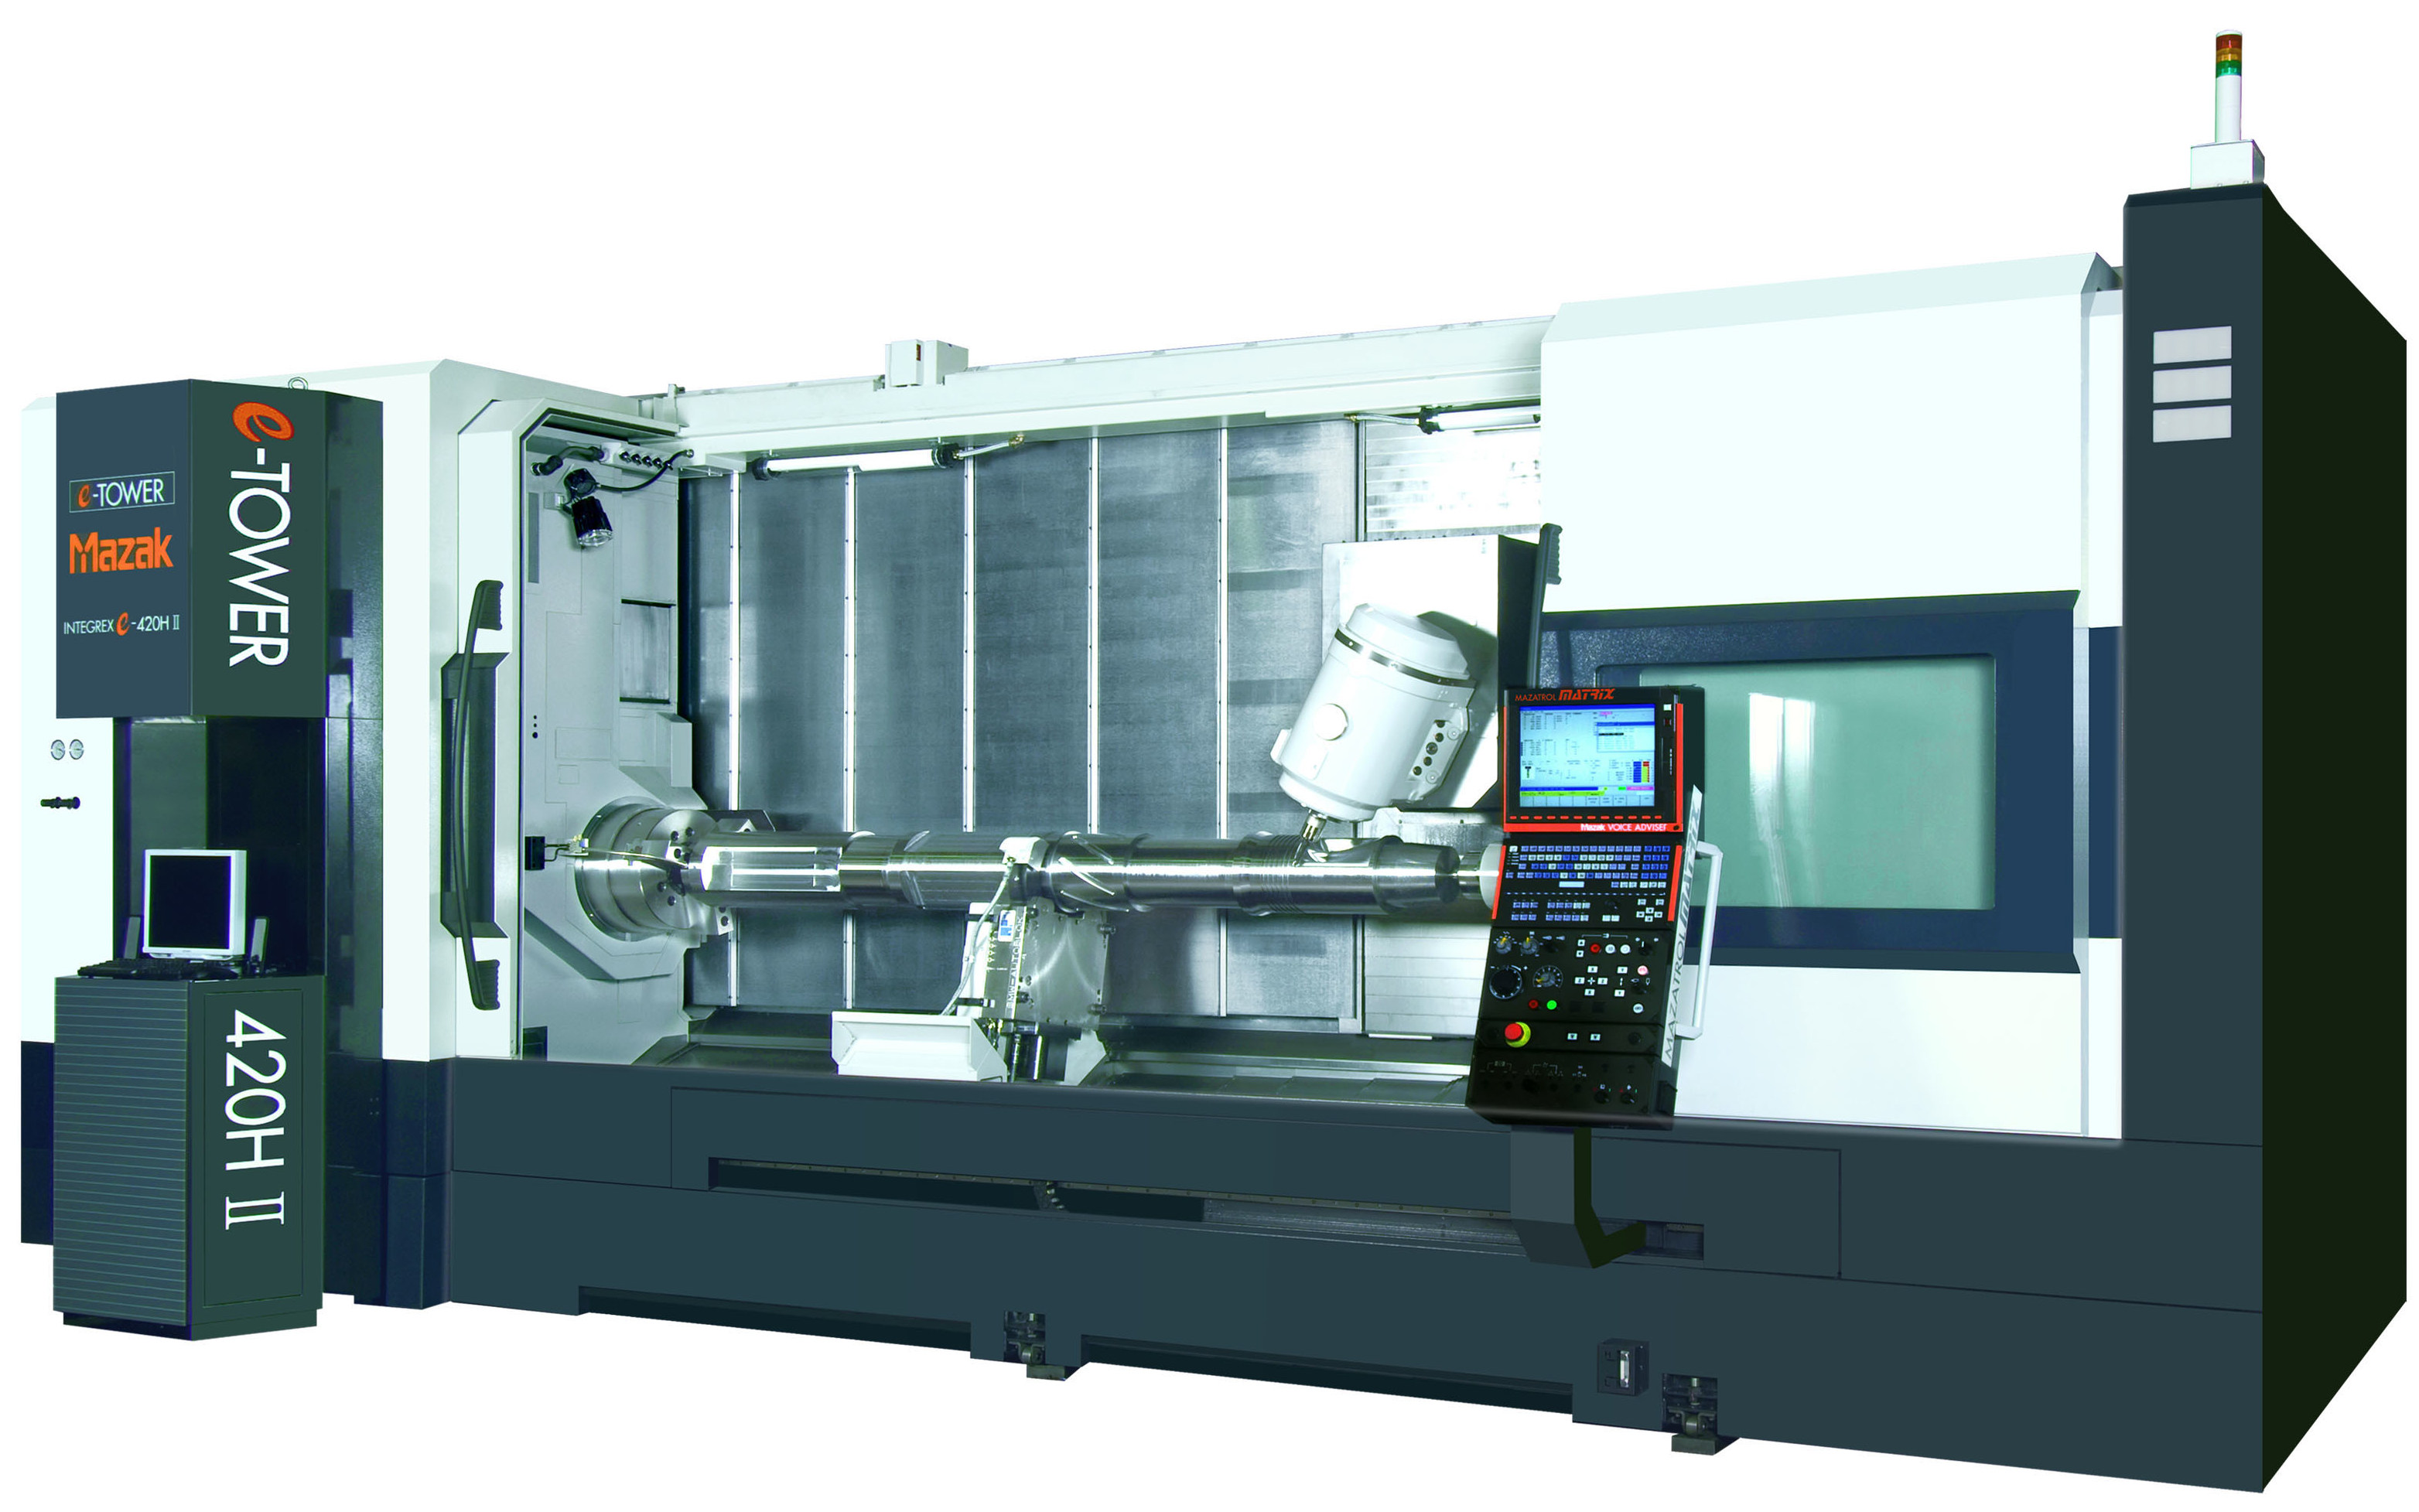 Mazak Features INTEGREX e-420H II Multi-Tasking Machine at